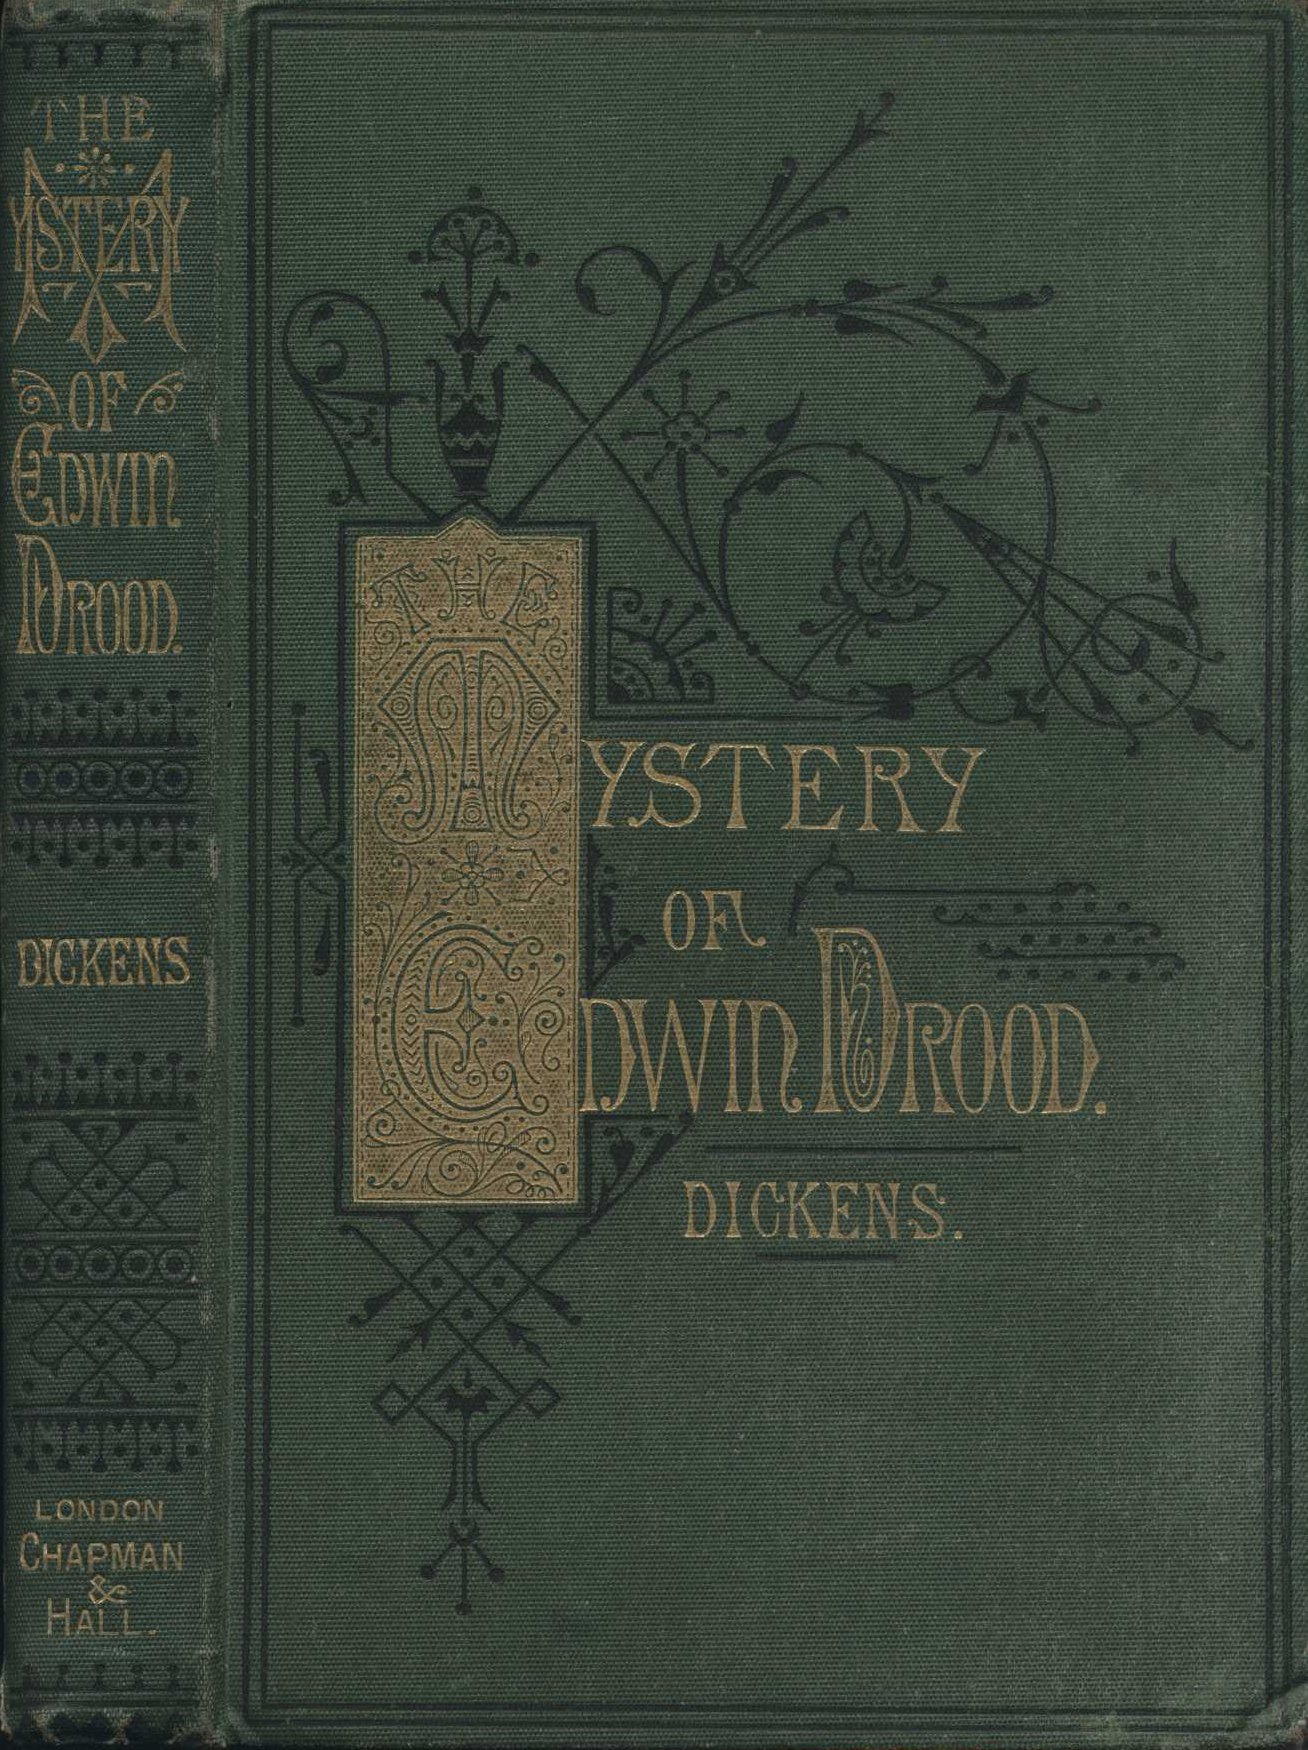 Charles Dickens. The mystery of Edwin Drood. London: Chapman & Hall, 1870.